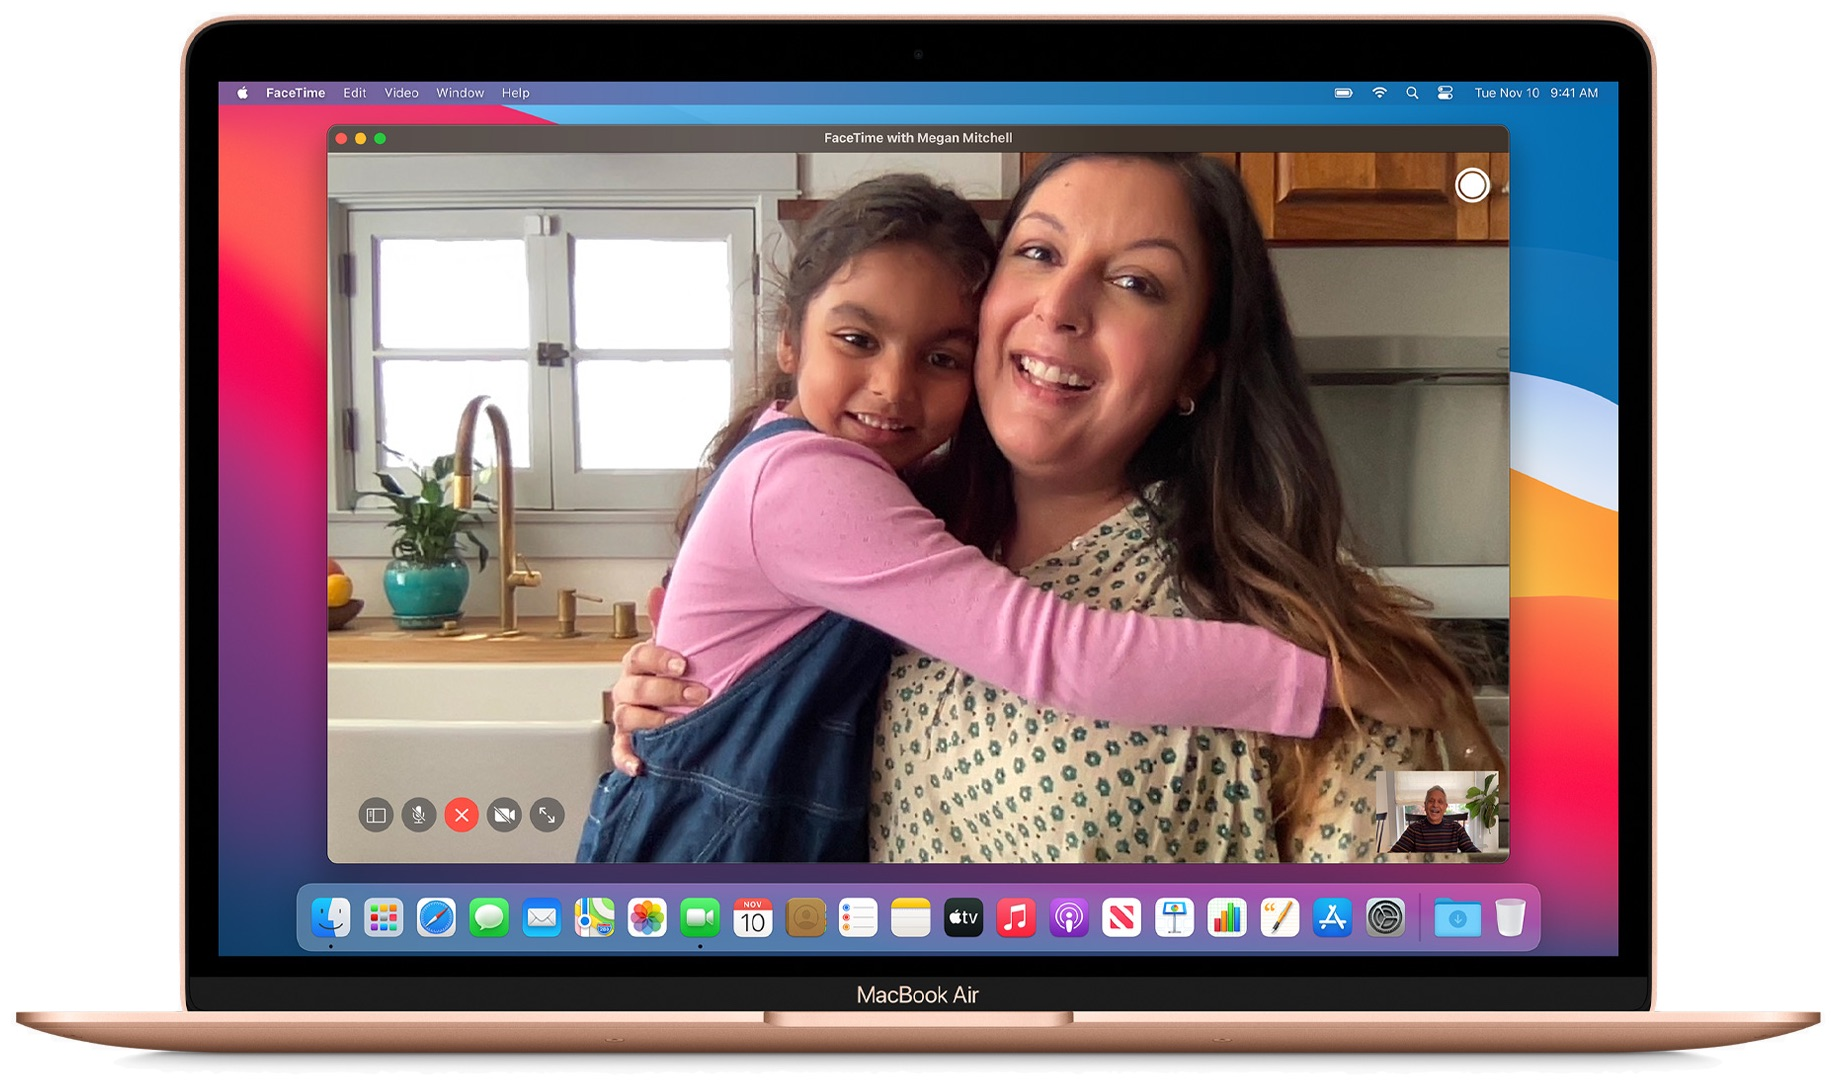 macbook air facetime camera